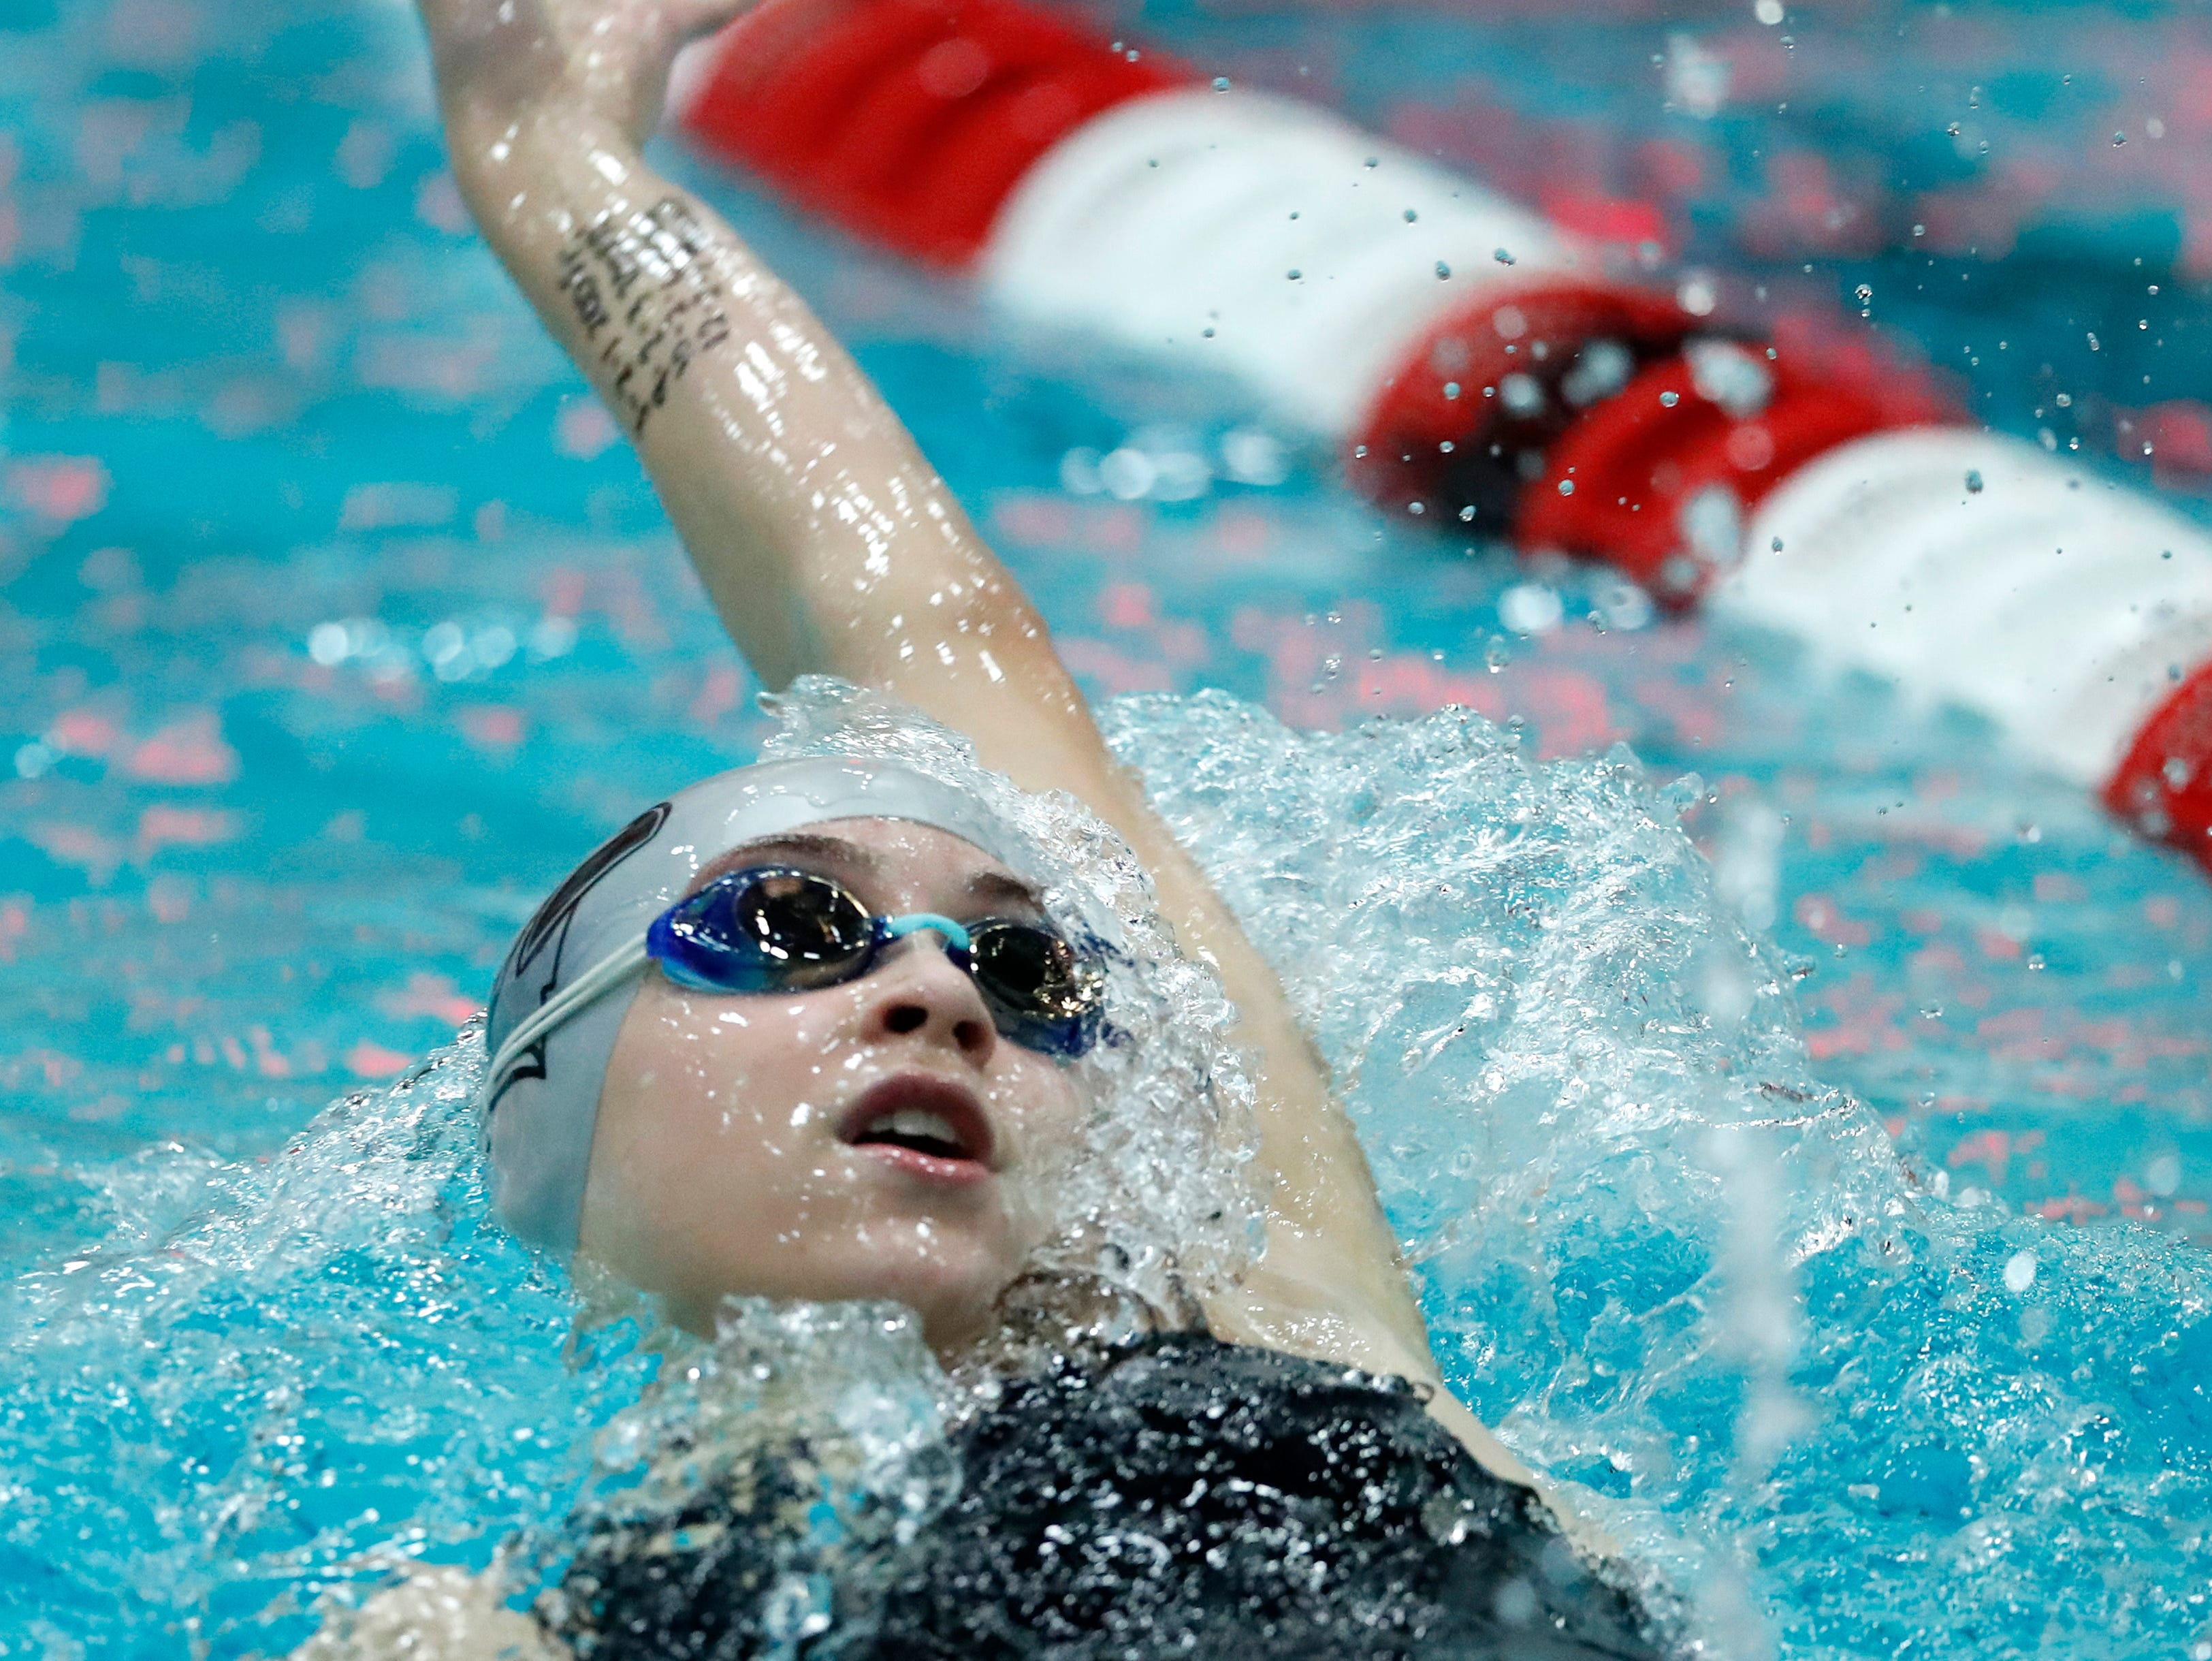 Merrill's Grace Schultz races in the 100 yard backstroke during the WIAA Division 2 State Swimming and Diving meet Friday, Nov. 9, 2018, at the UW Natatorium in Madison, Wis.